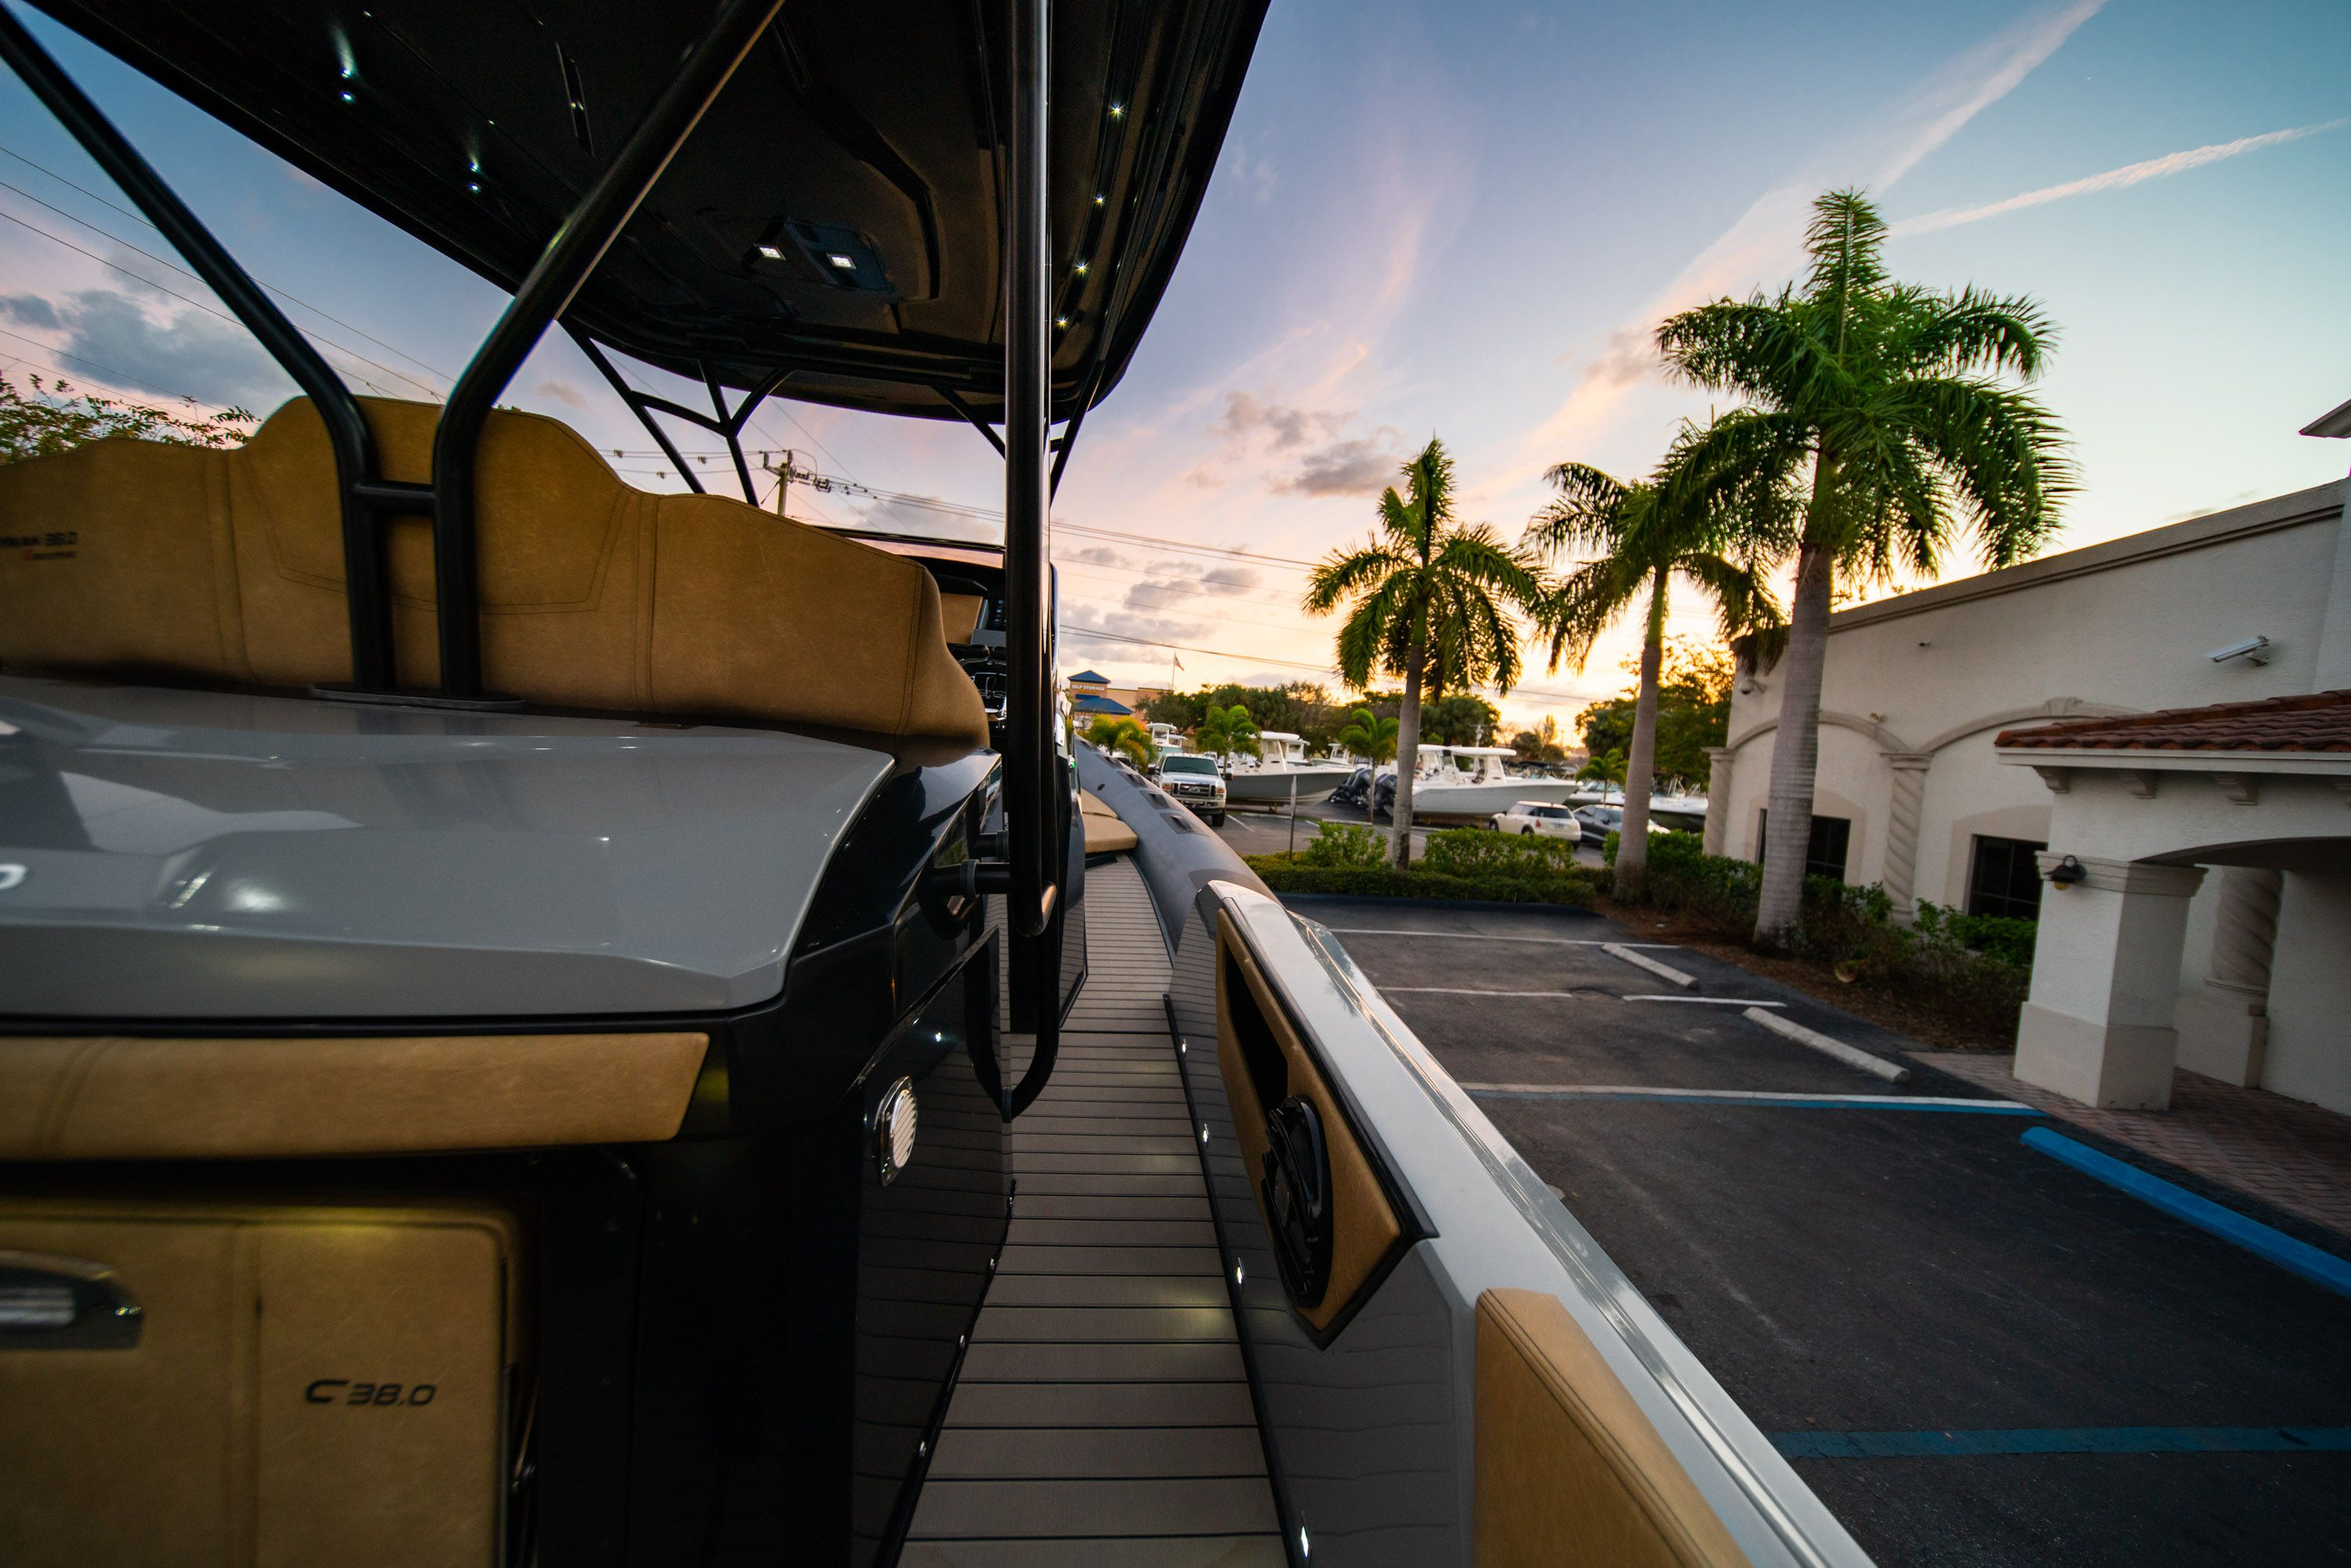 Thumbnail 22 for New 2019 Ranieri Cayman 38 Executive boat for sale in West Palm Beach, FL